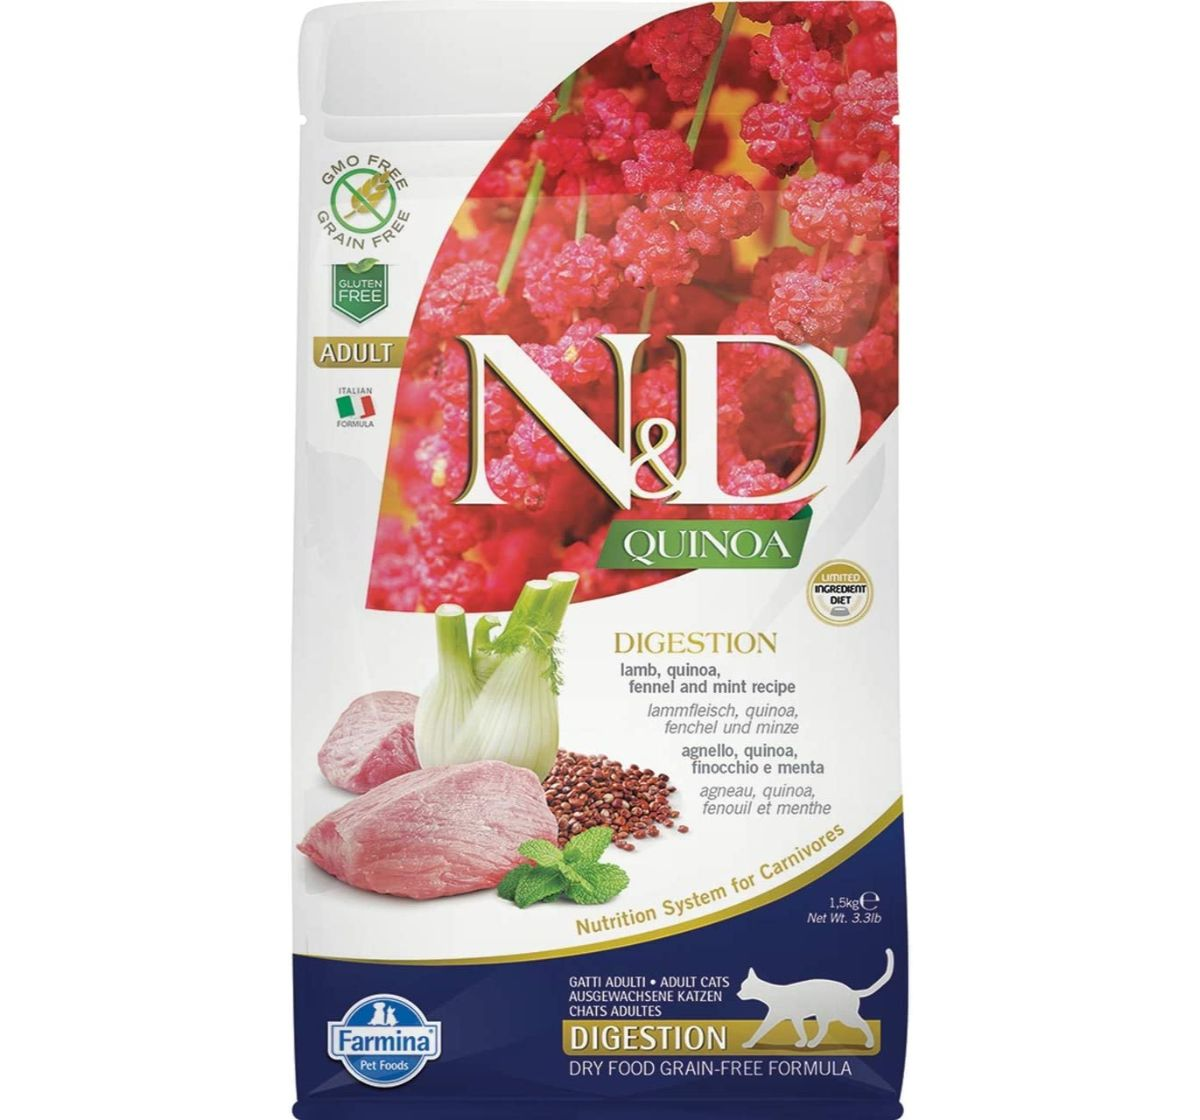 Natural & Delicious Grain Free Quinoa Digestion Lamb Adult - 300 gm (Pack Of 20)